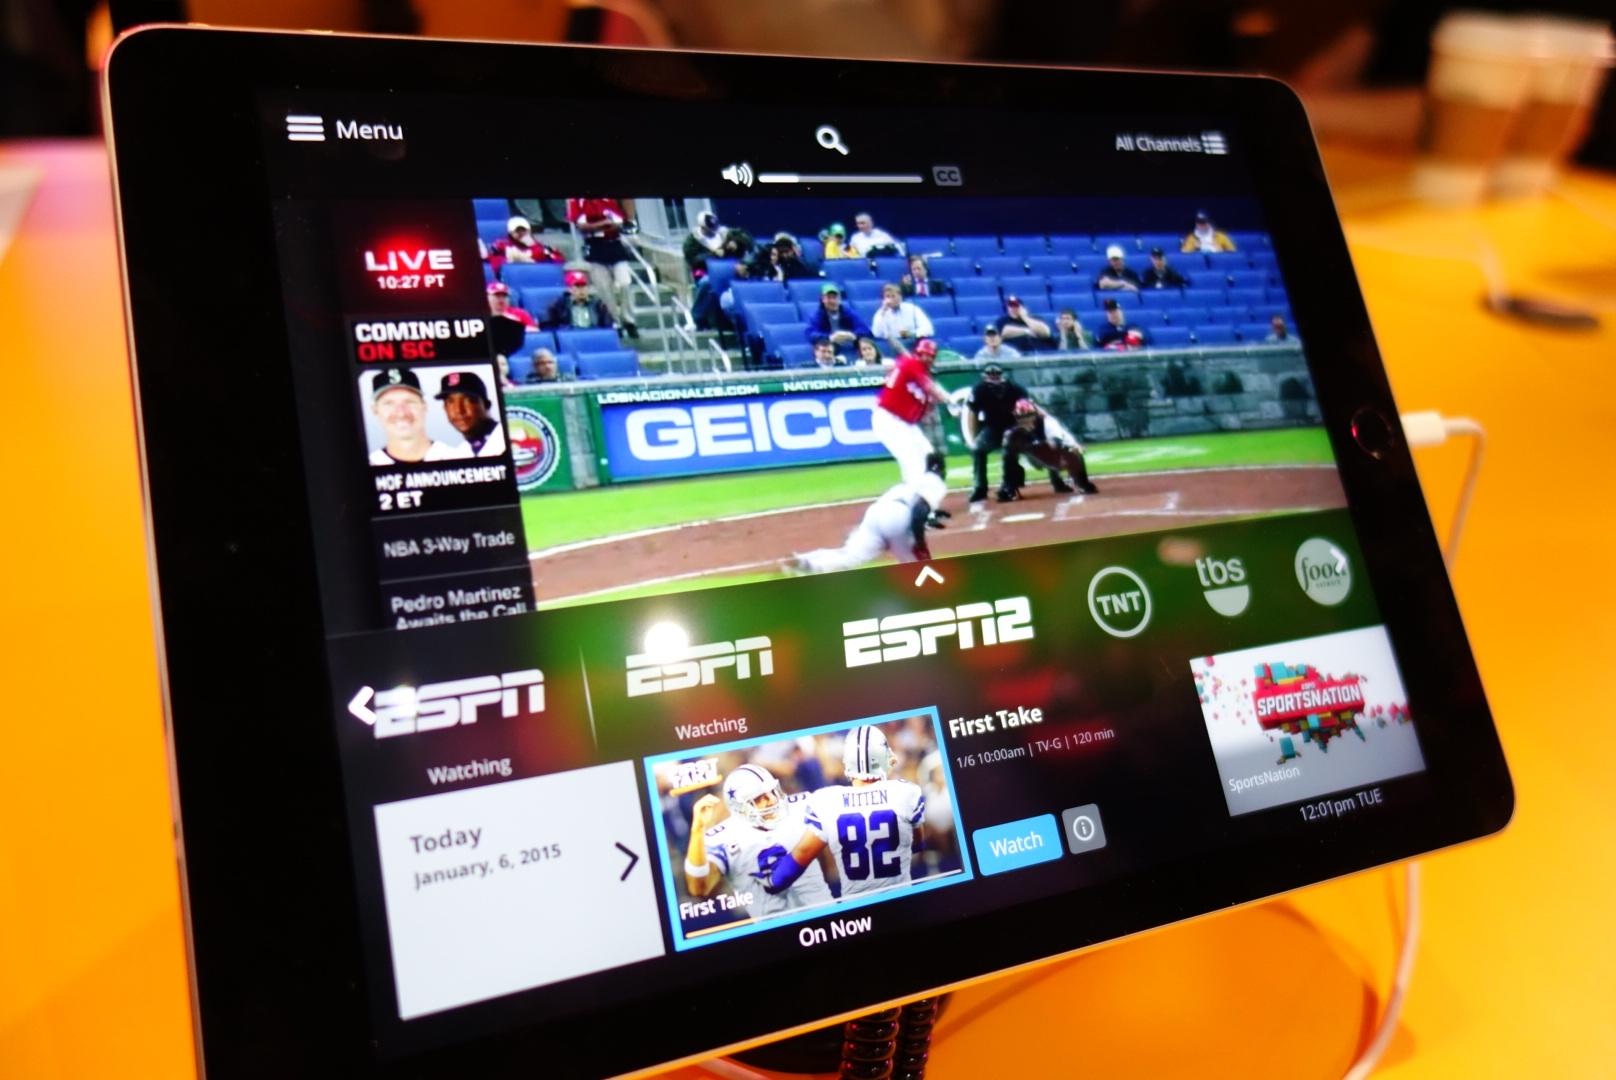 Hands-On With Dish's Sling TV Streaming Service. Is It Worth The $20?